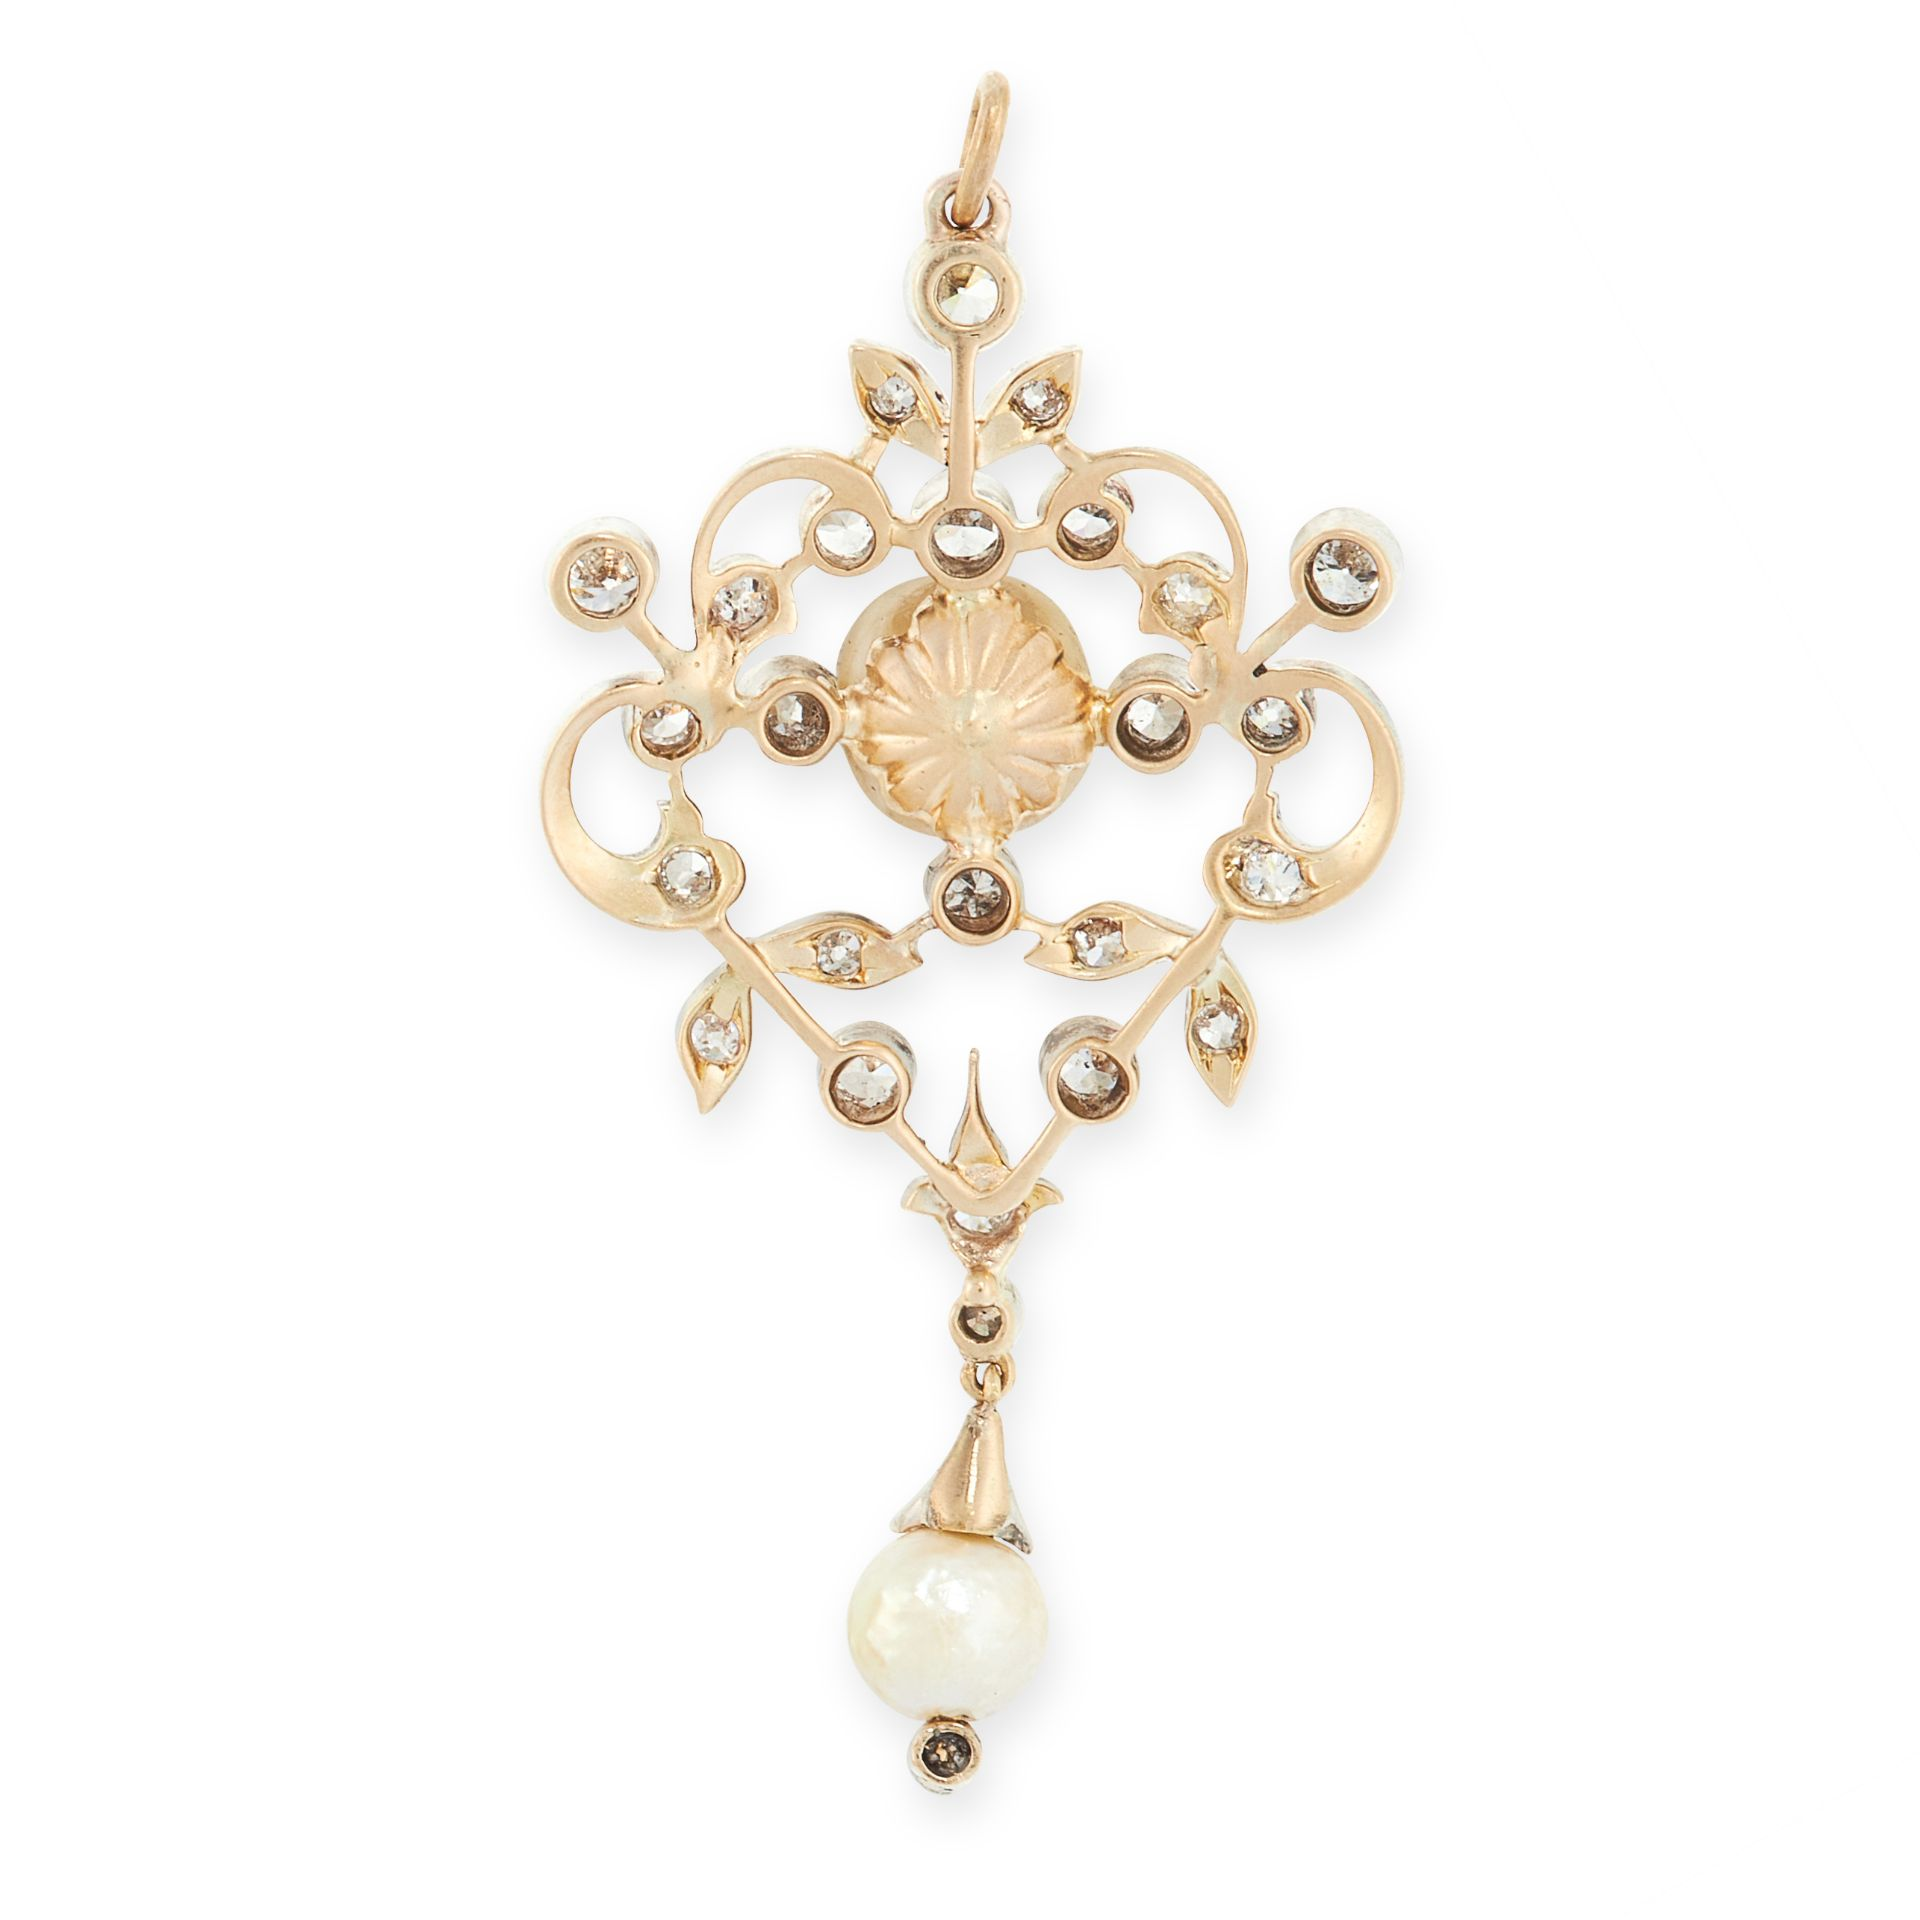 AN ANTIQUE NATURAL PEARL AND DIAMOND PENDANT CIRCA 1900 set with two pearls of 7.90mm and 5.89mm, - Image 2 of 2